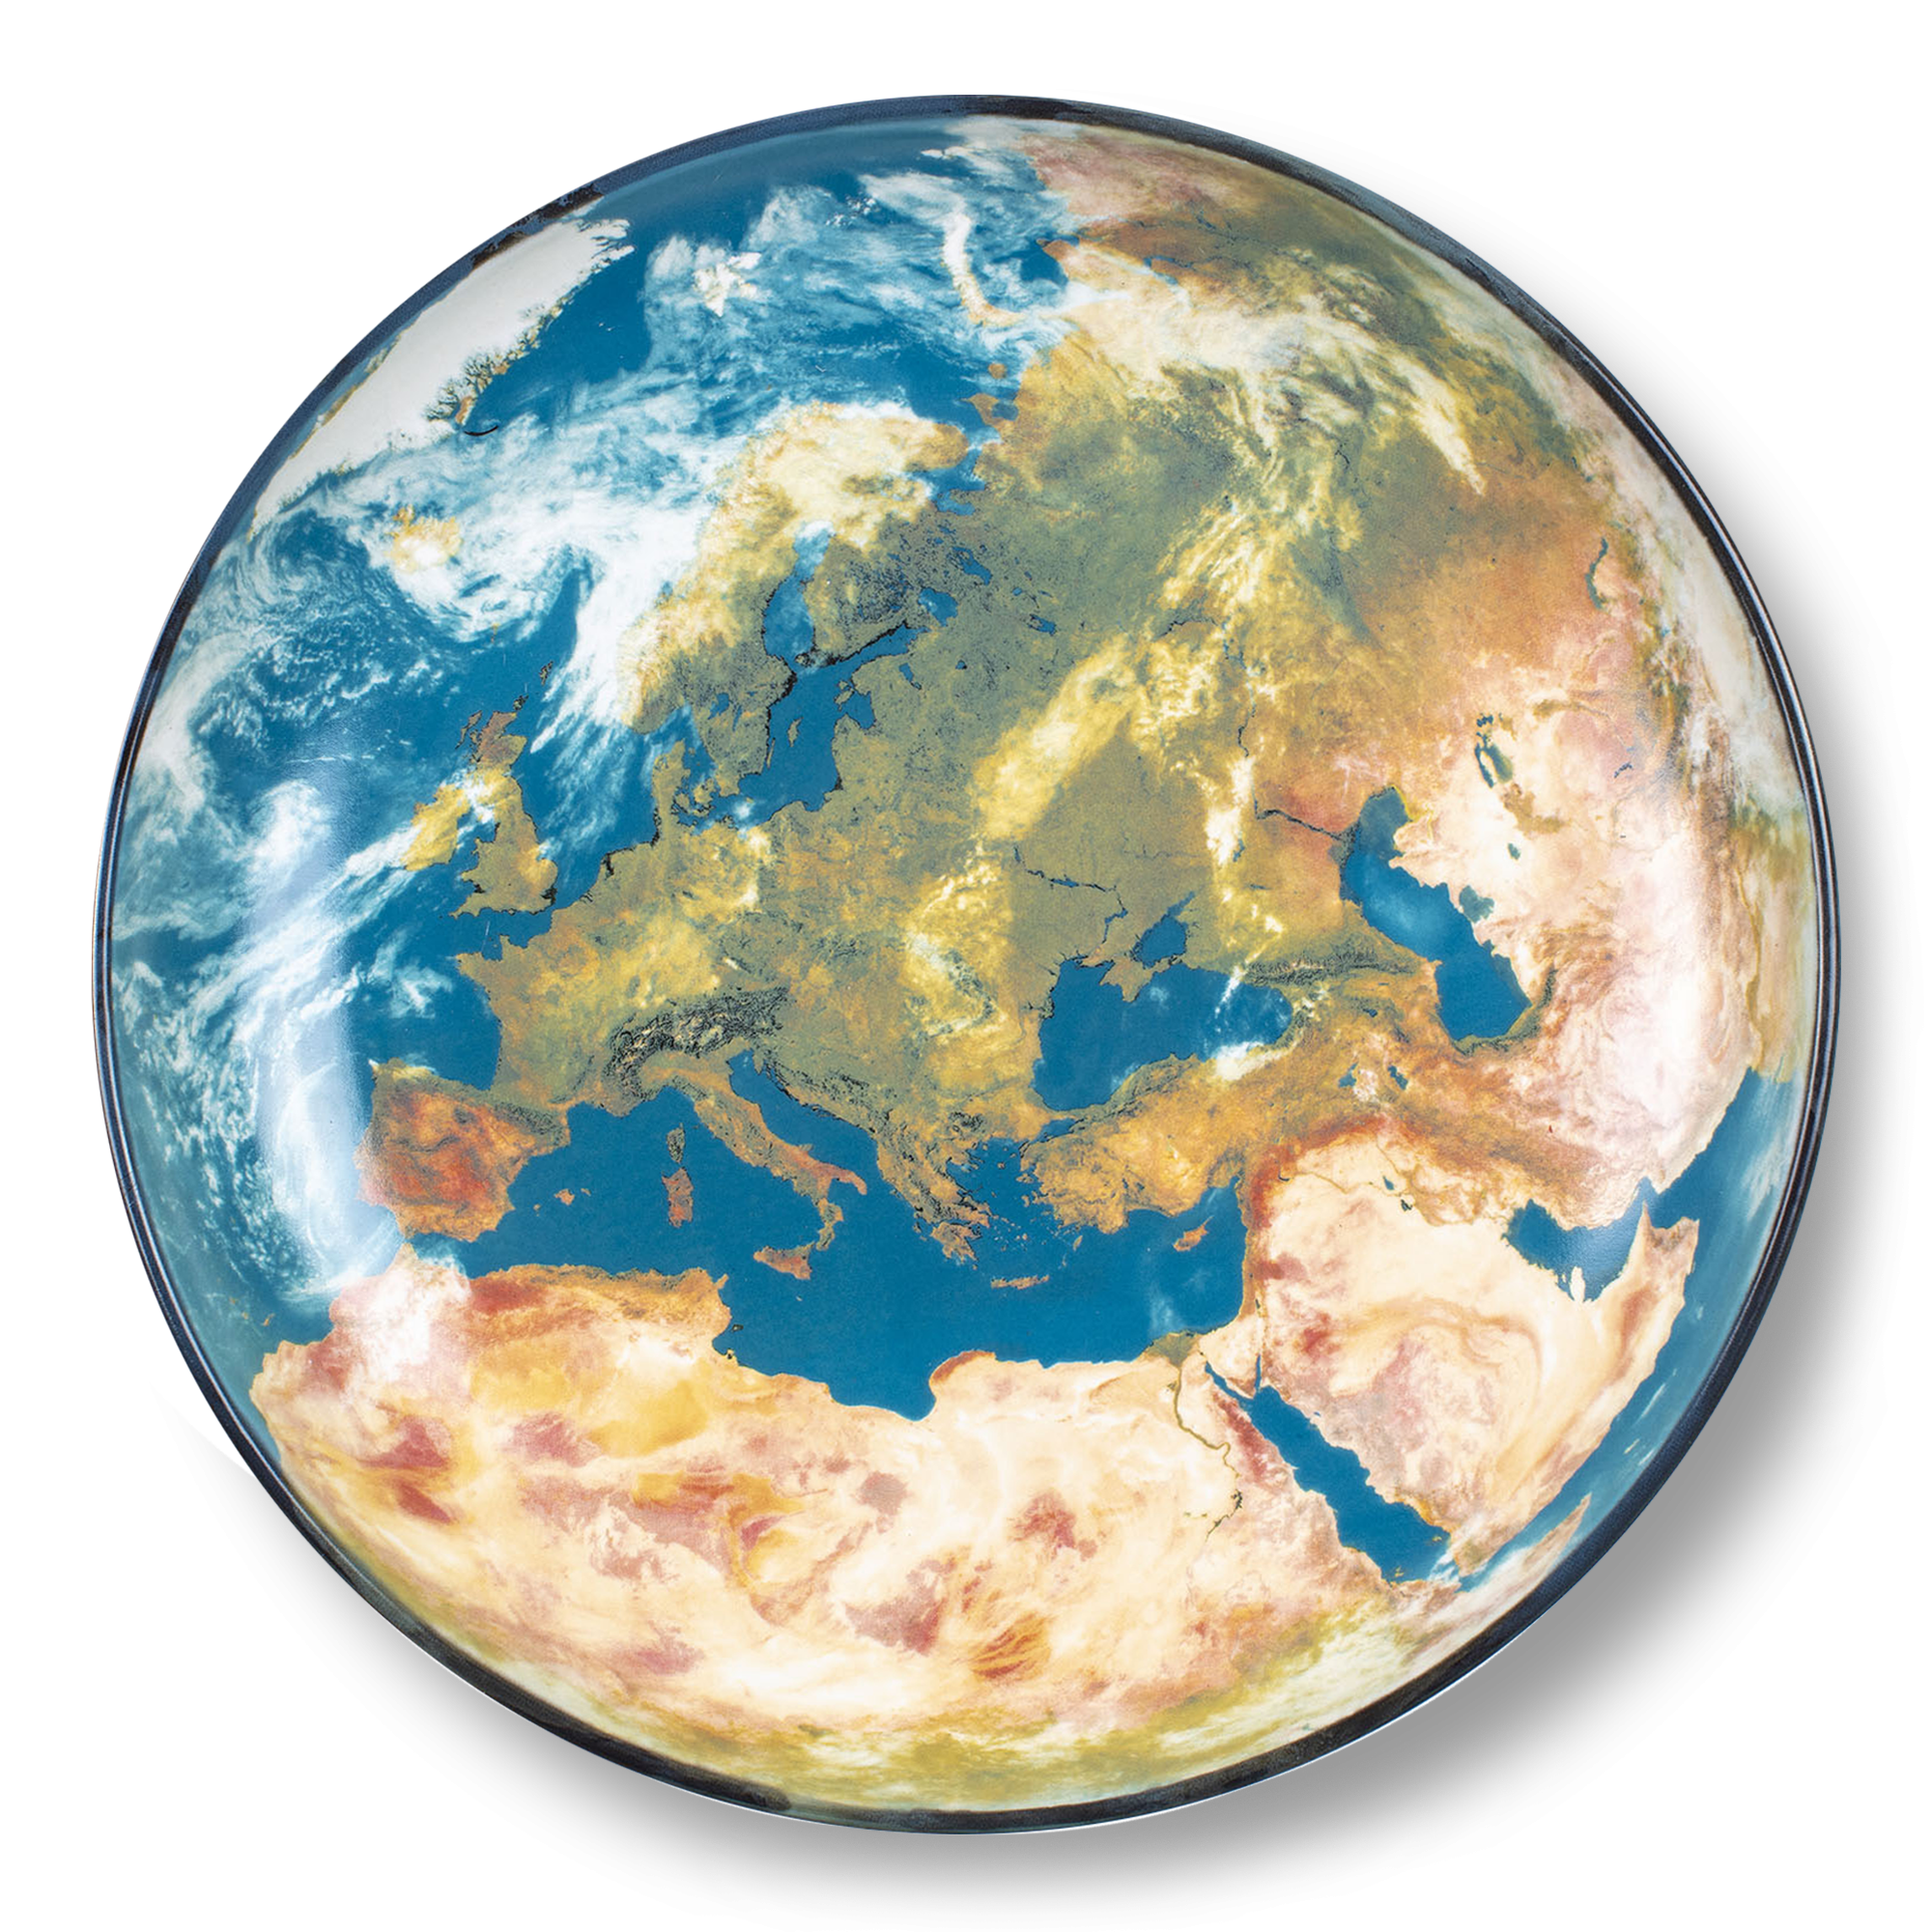 cosmic-diner-earth-europe-tray-5